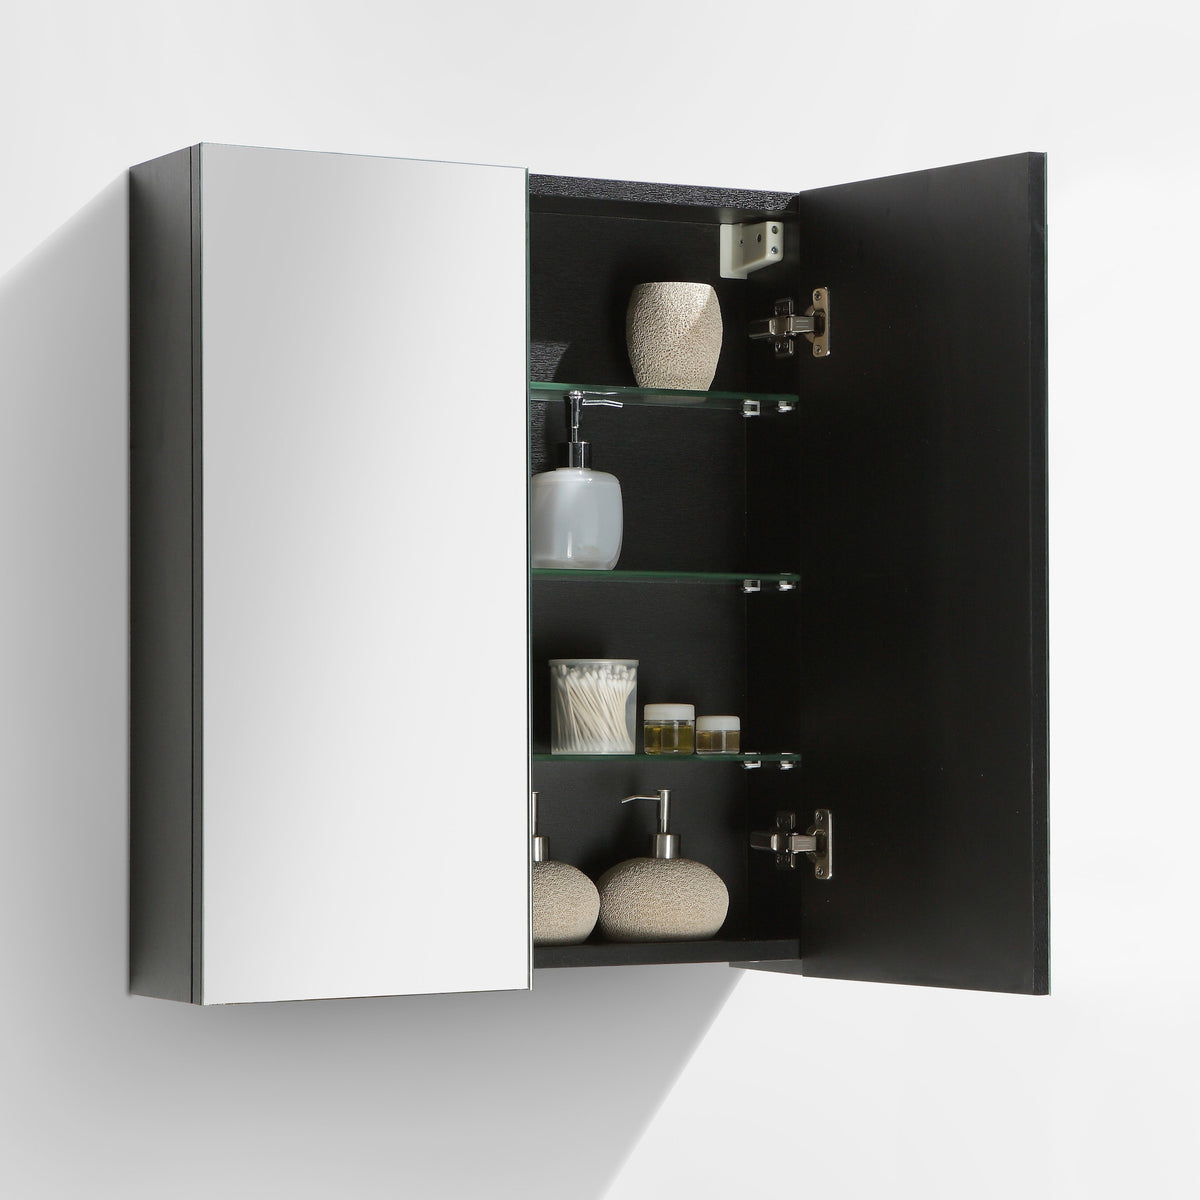 armoire de toilette bloc miroir siena largeur 60 cm ch ne noir le monde du bain. Black Bedroom Furniture Sets. Home Design Ideas